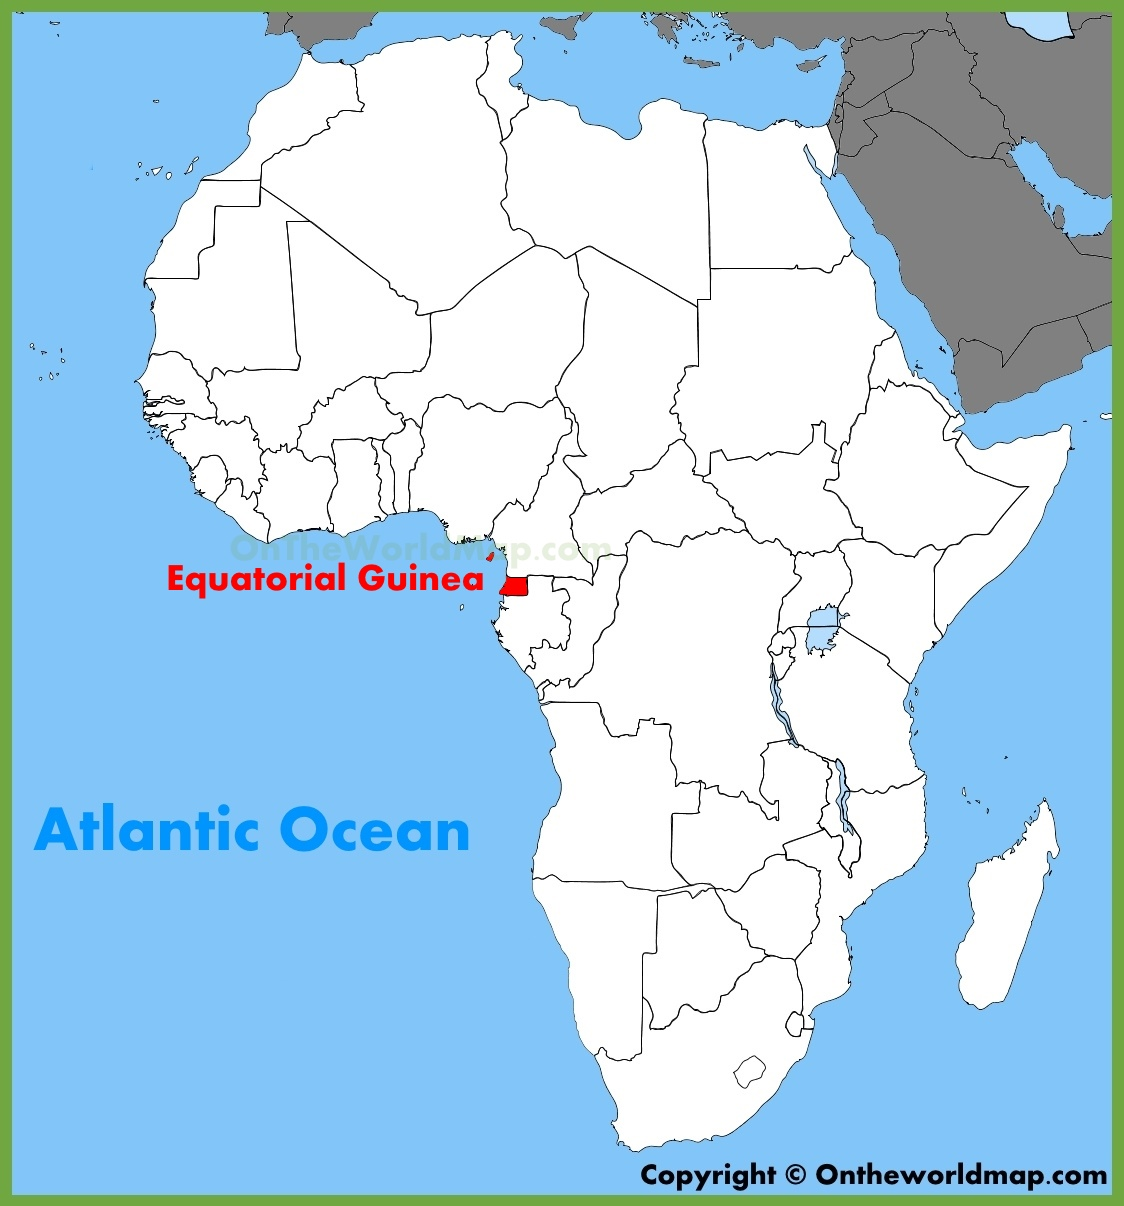 What the Heck is an Equatorial Guinea? – Ramblin' Randy Map Of Equatorial Guinea In Spanish on map showing algeria and guinea, map of equatorial guinea in madrid, the capital of guinea ecuatorial in spanish, map of nigeria biafra, guinea ecuatorial map in spanish, map of africa, map of only equatorial guinea, map of mbini river, map of equatorial guinea in spain,